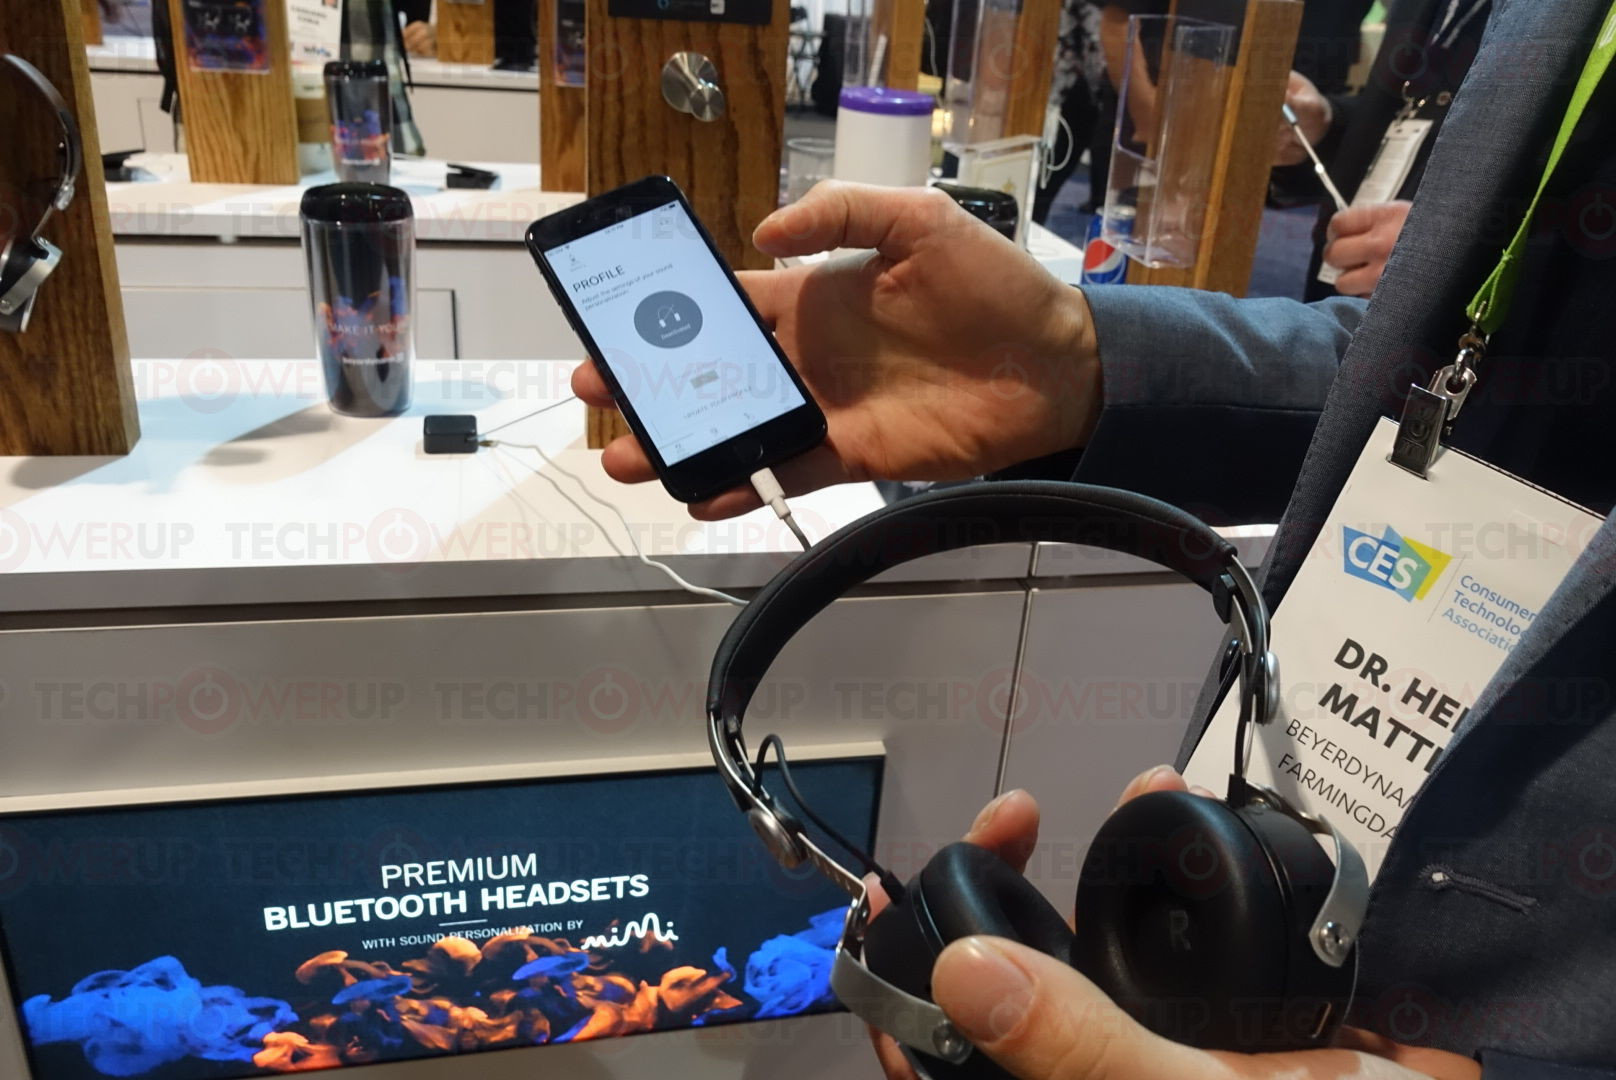 Beyerdynamic reveals their upcoming audio products at ces 2018 all three siblings are supported by beyerdynamics miy app which allows users to personalize the audio to their linking sciox Image collections